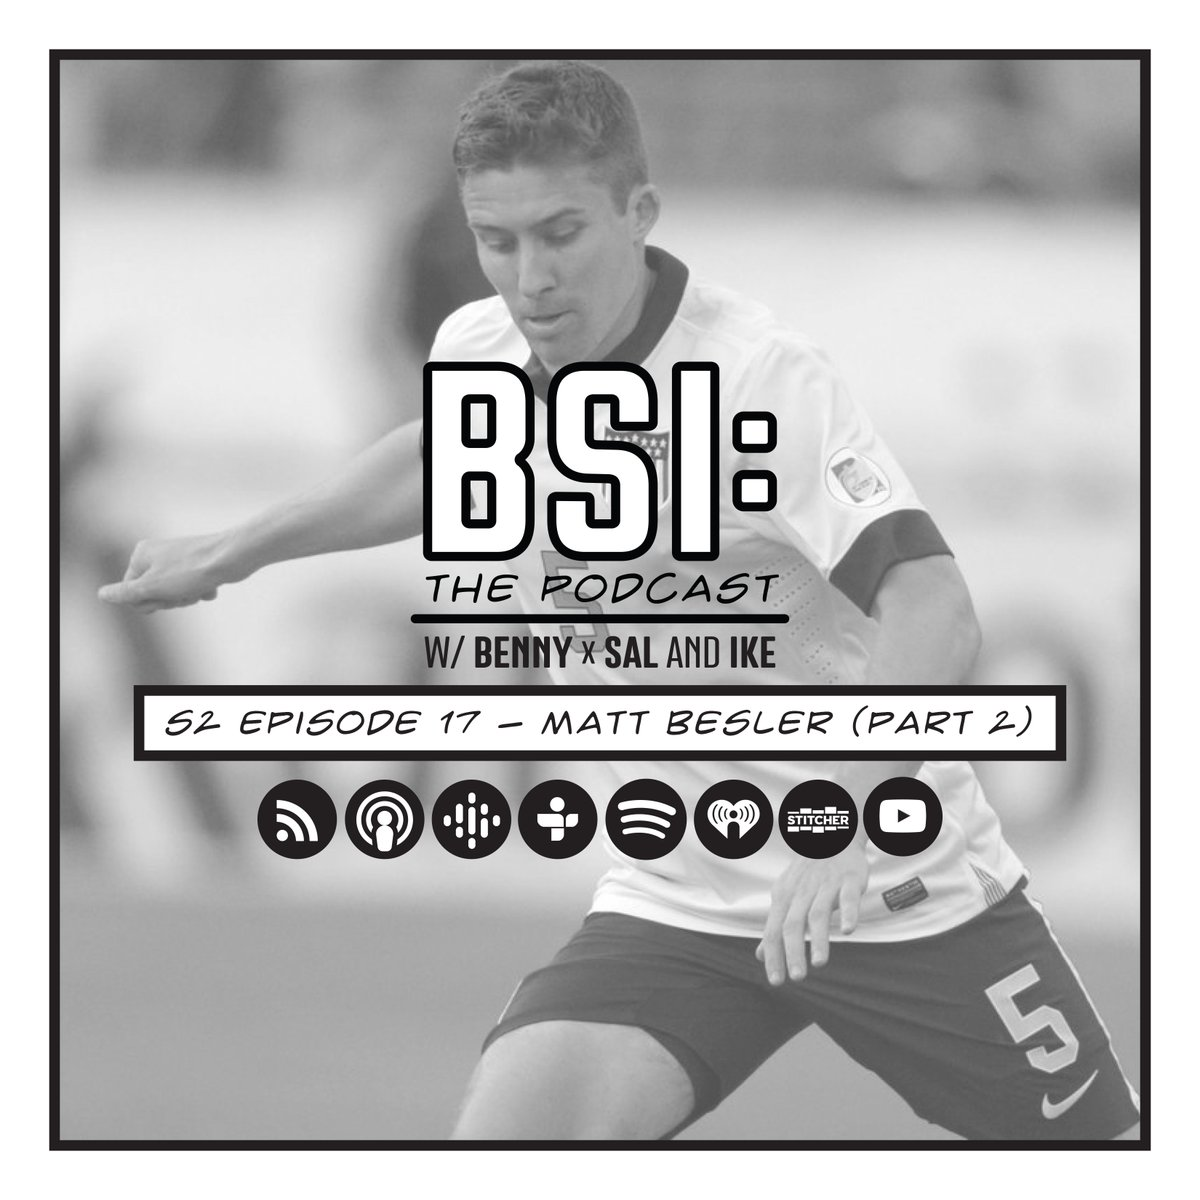 🔥 PART 2 IS OUT!🎙S2 E17 | Matt Besler (PART2) 🔗https://t.co/eAaGAuxXWl  🗣@MattBesler joins the gang to talk about his early days in @SportingKC, the ups and downs with the @USMNT, and who he almost got traded to in @MLS. https://t.co/ZESHCjOdAS